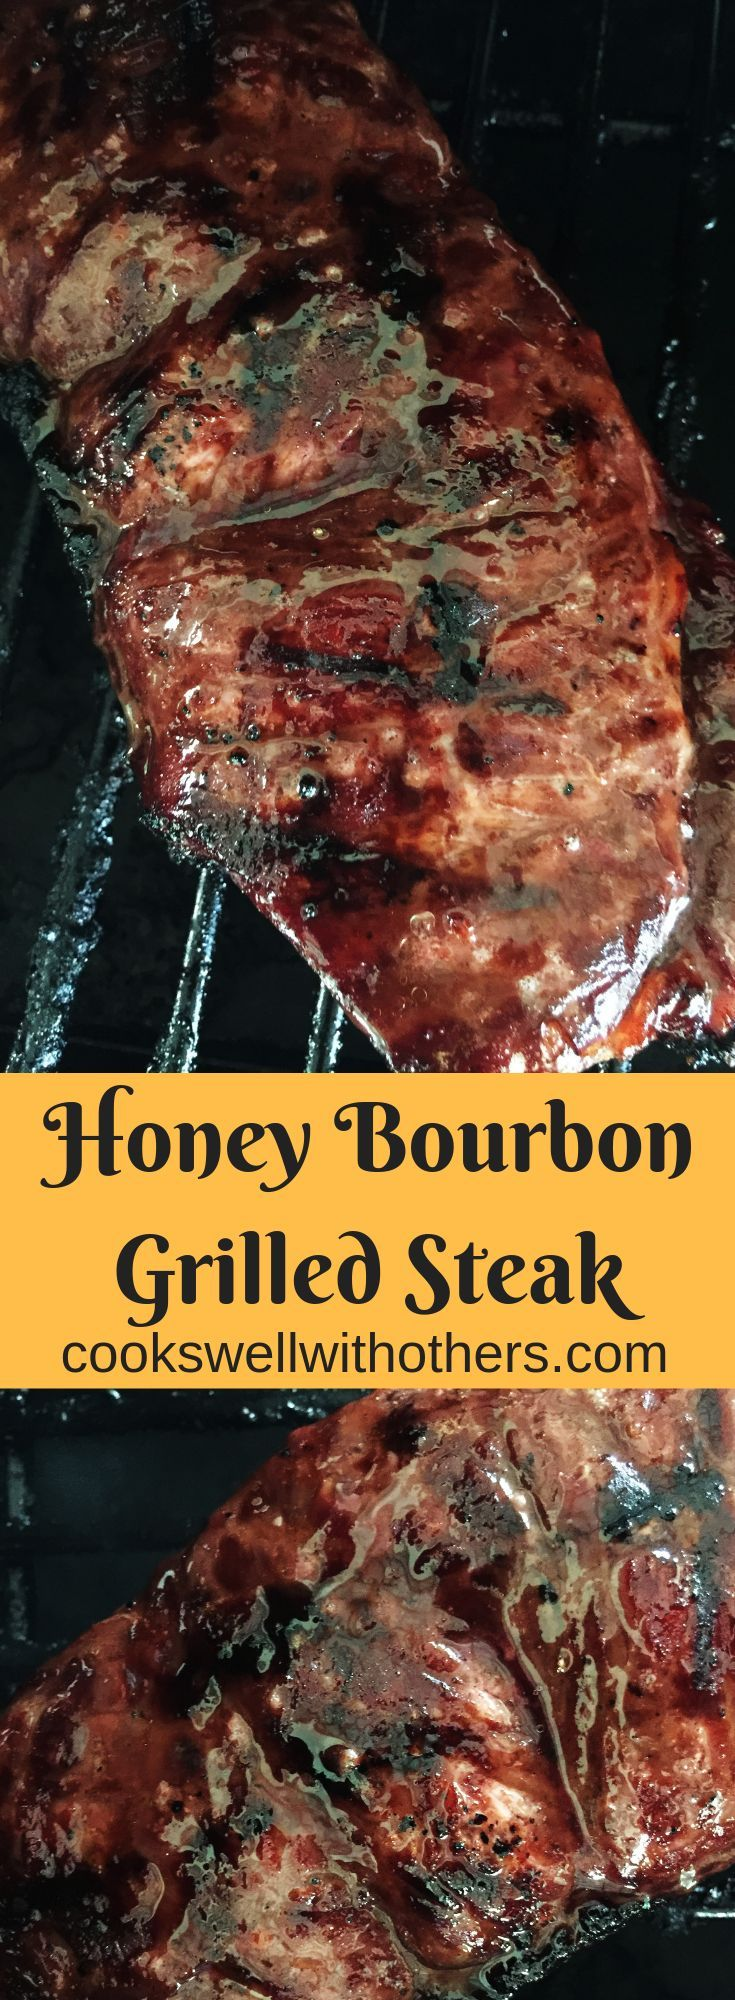 Honey Bourbon Grilled Steak - Cooks Well With Others